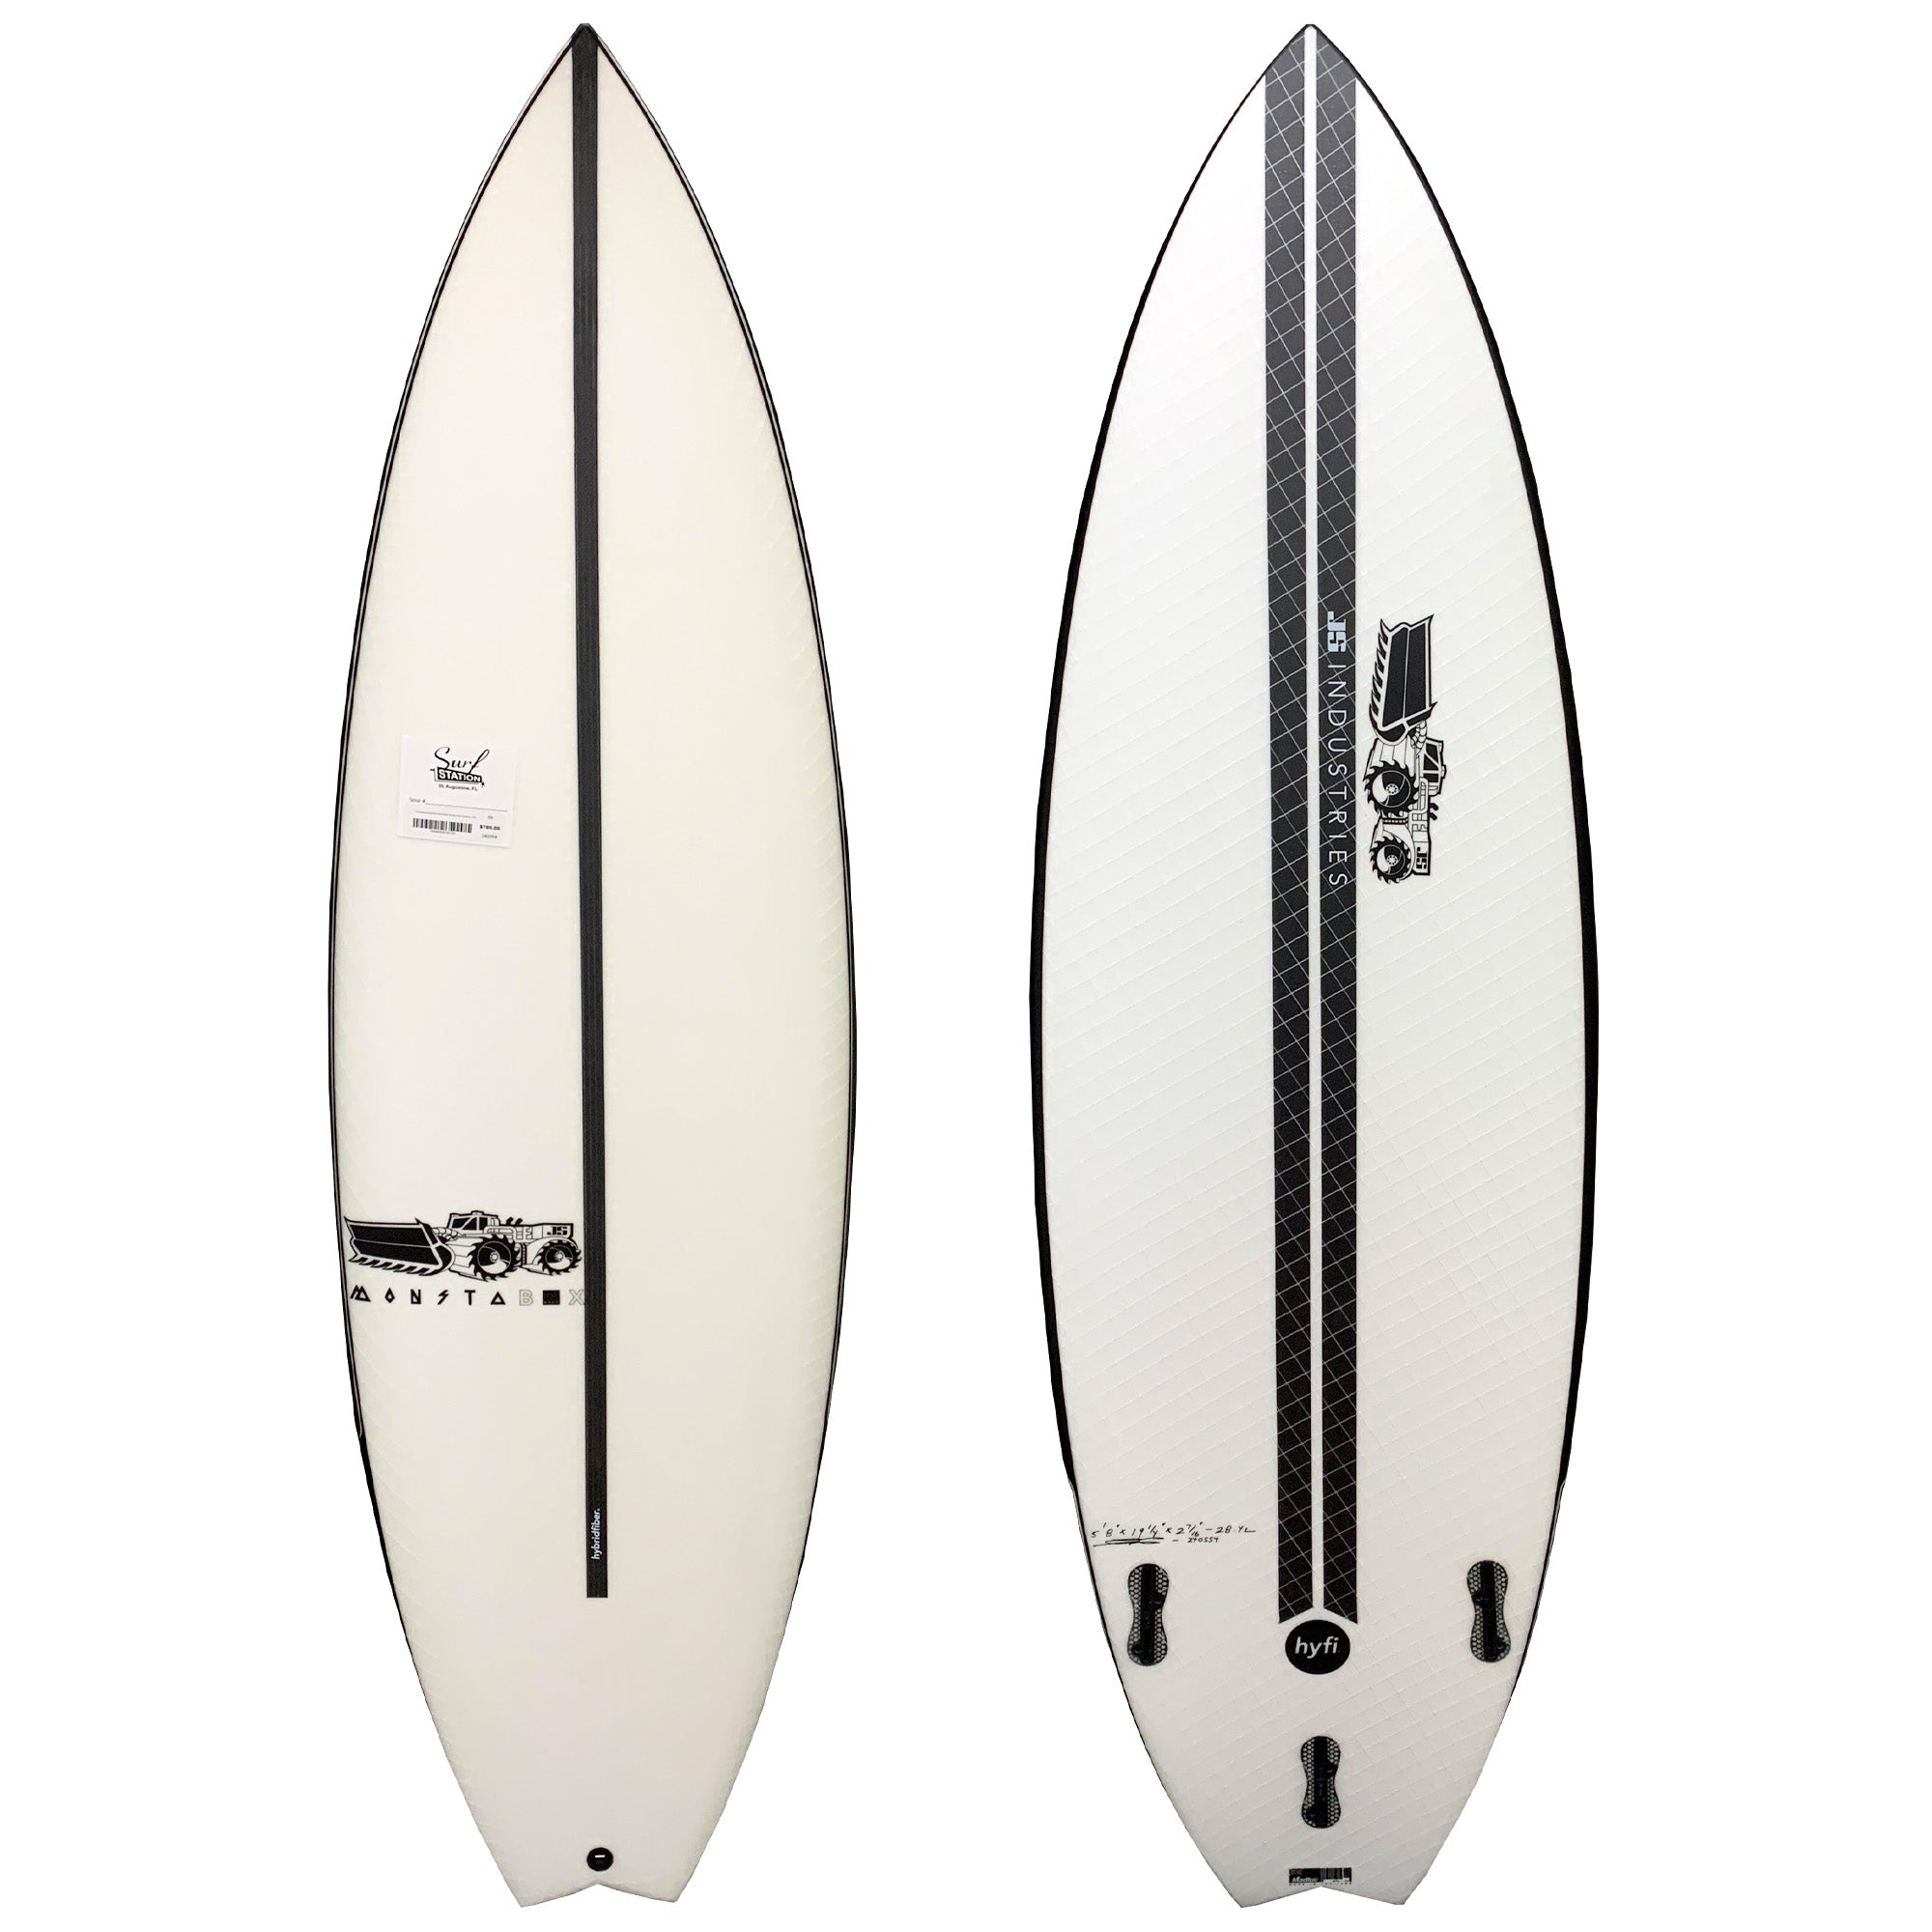 JS Industries Monsta Box 2020 Swallow Tail Easy Rider Surfboard - HYFI